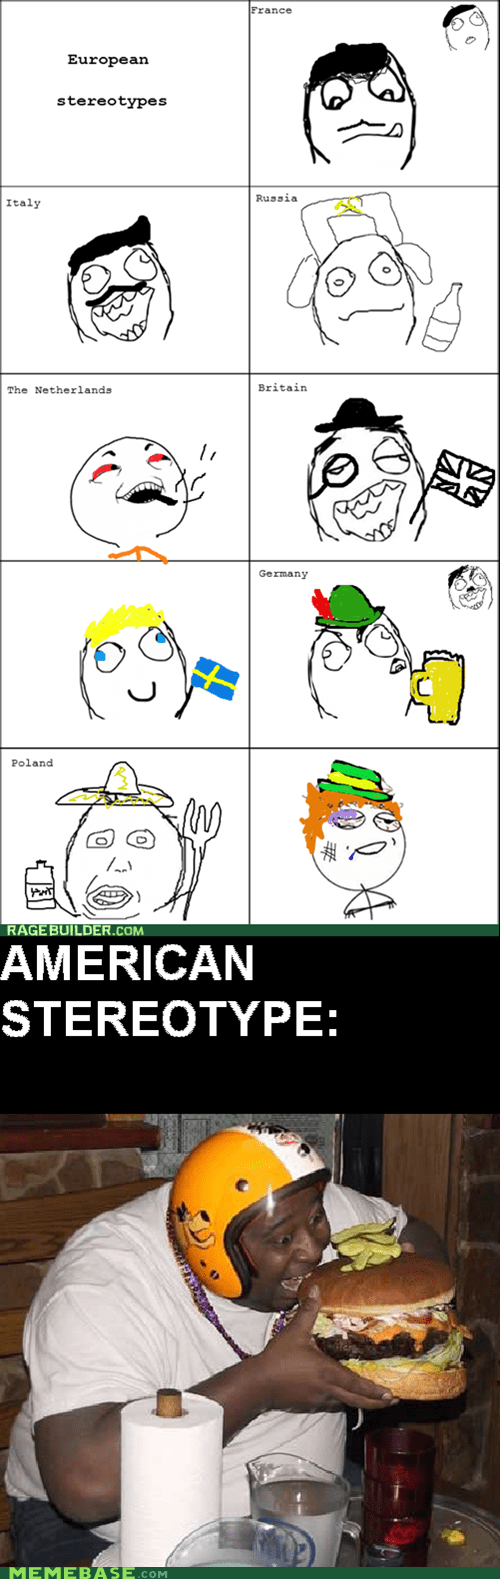 america burgers Rage Comics stereotypes - 6119731456